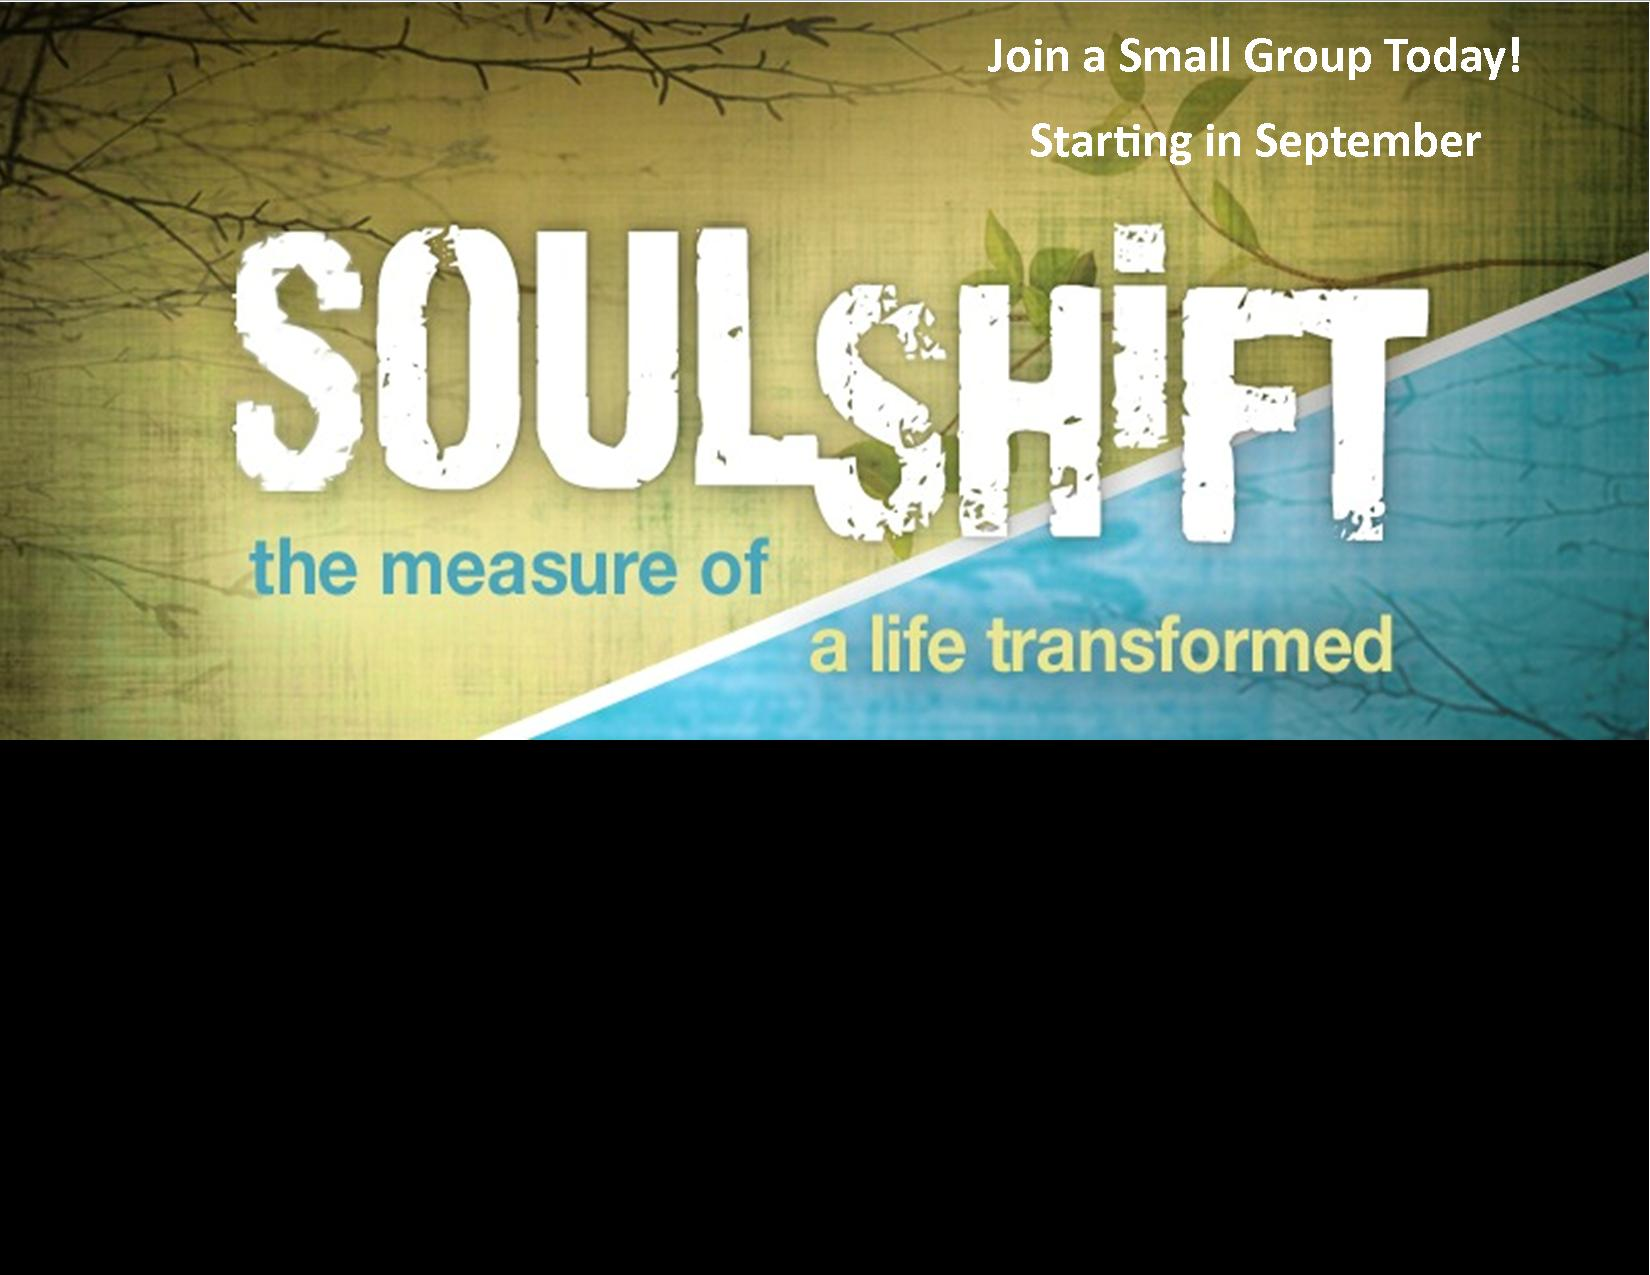 Click Here to Join a Small Group